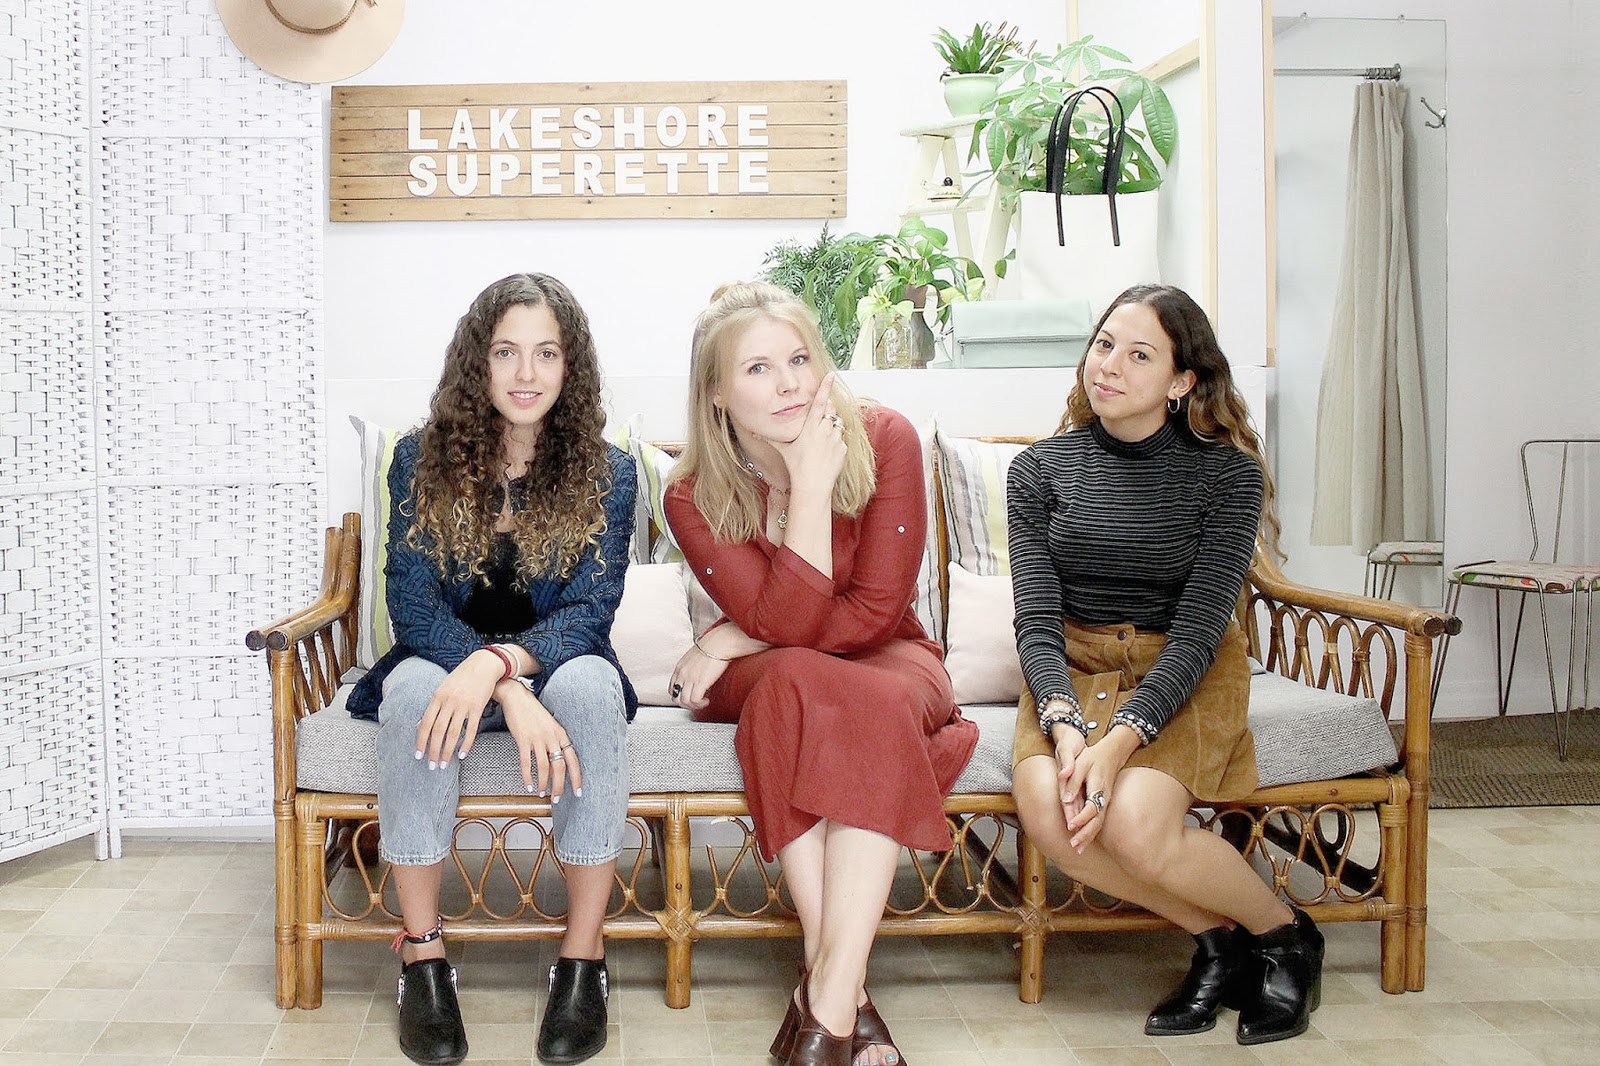 Lakeshore Superette in Mississauga. Jude, Yara and Teagen sitting in front of a self-timer